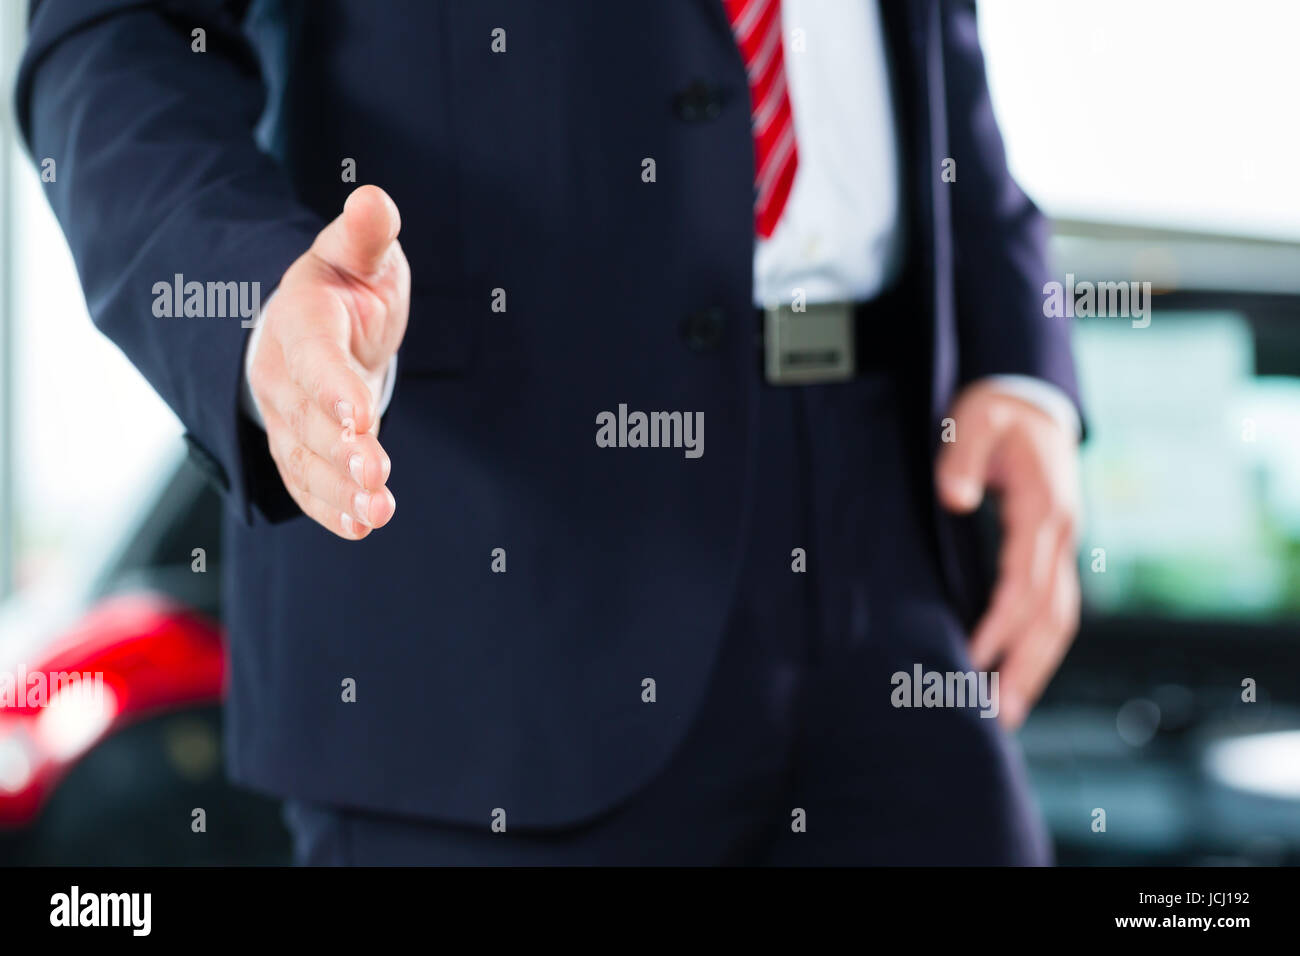 Seller or car salesman in car dealership presenting his new and used cars in the showroom - Stock Image